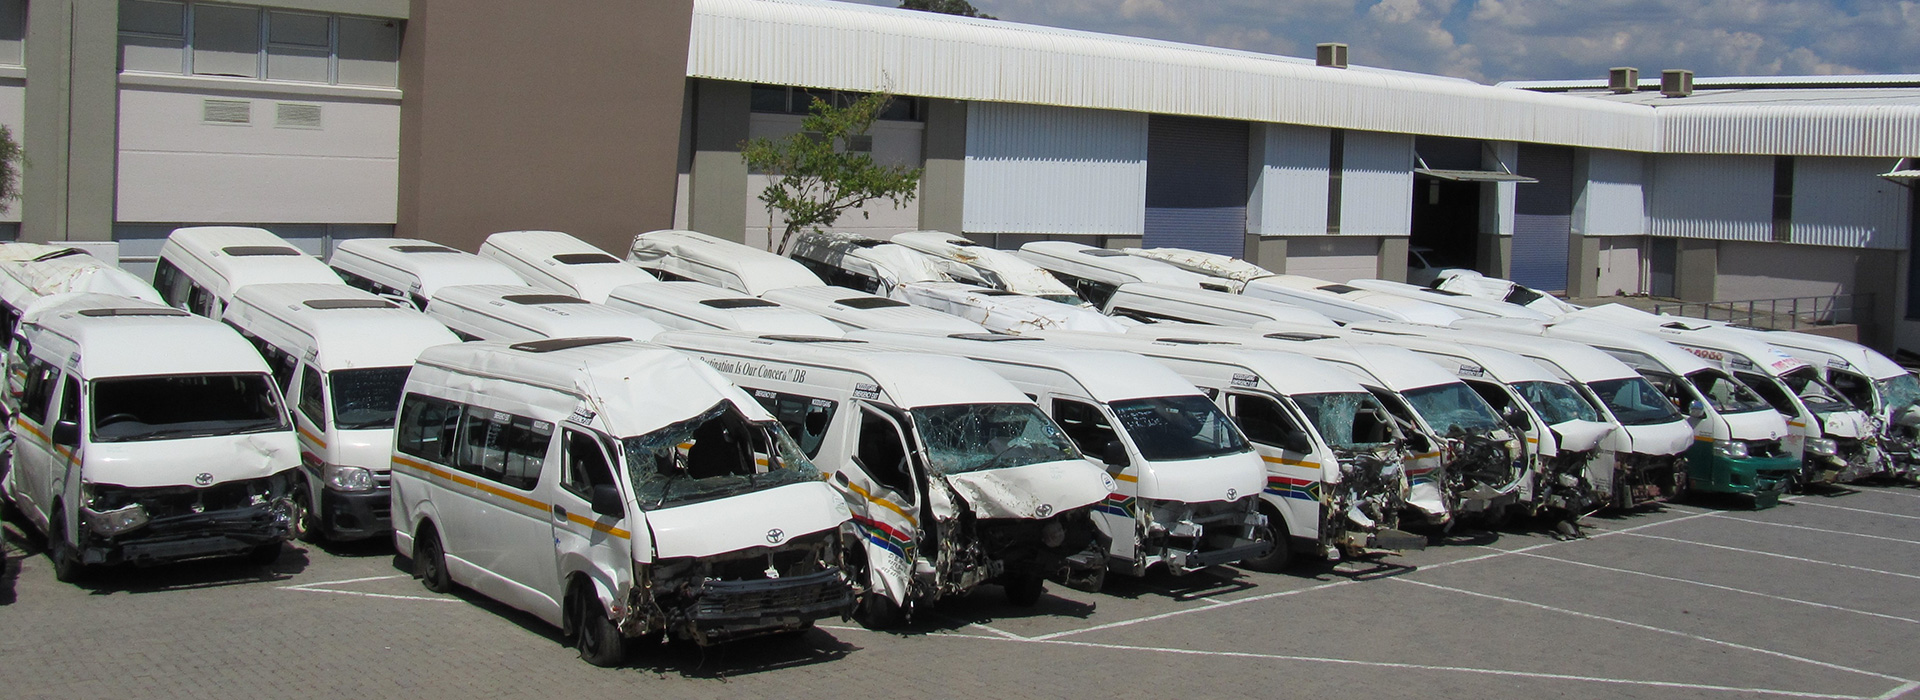 Need quality taxi parts?